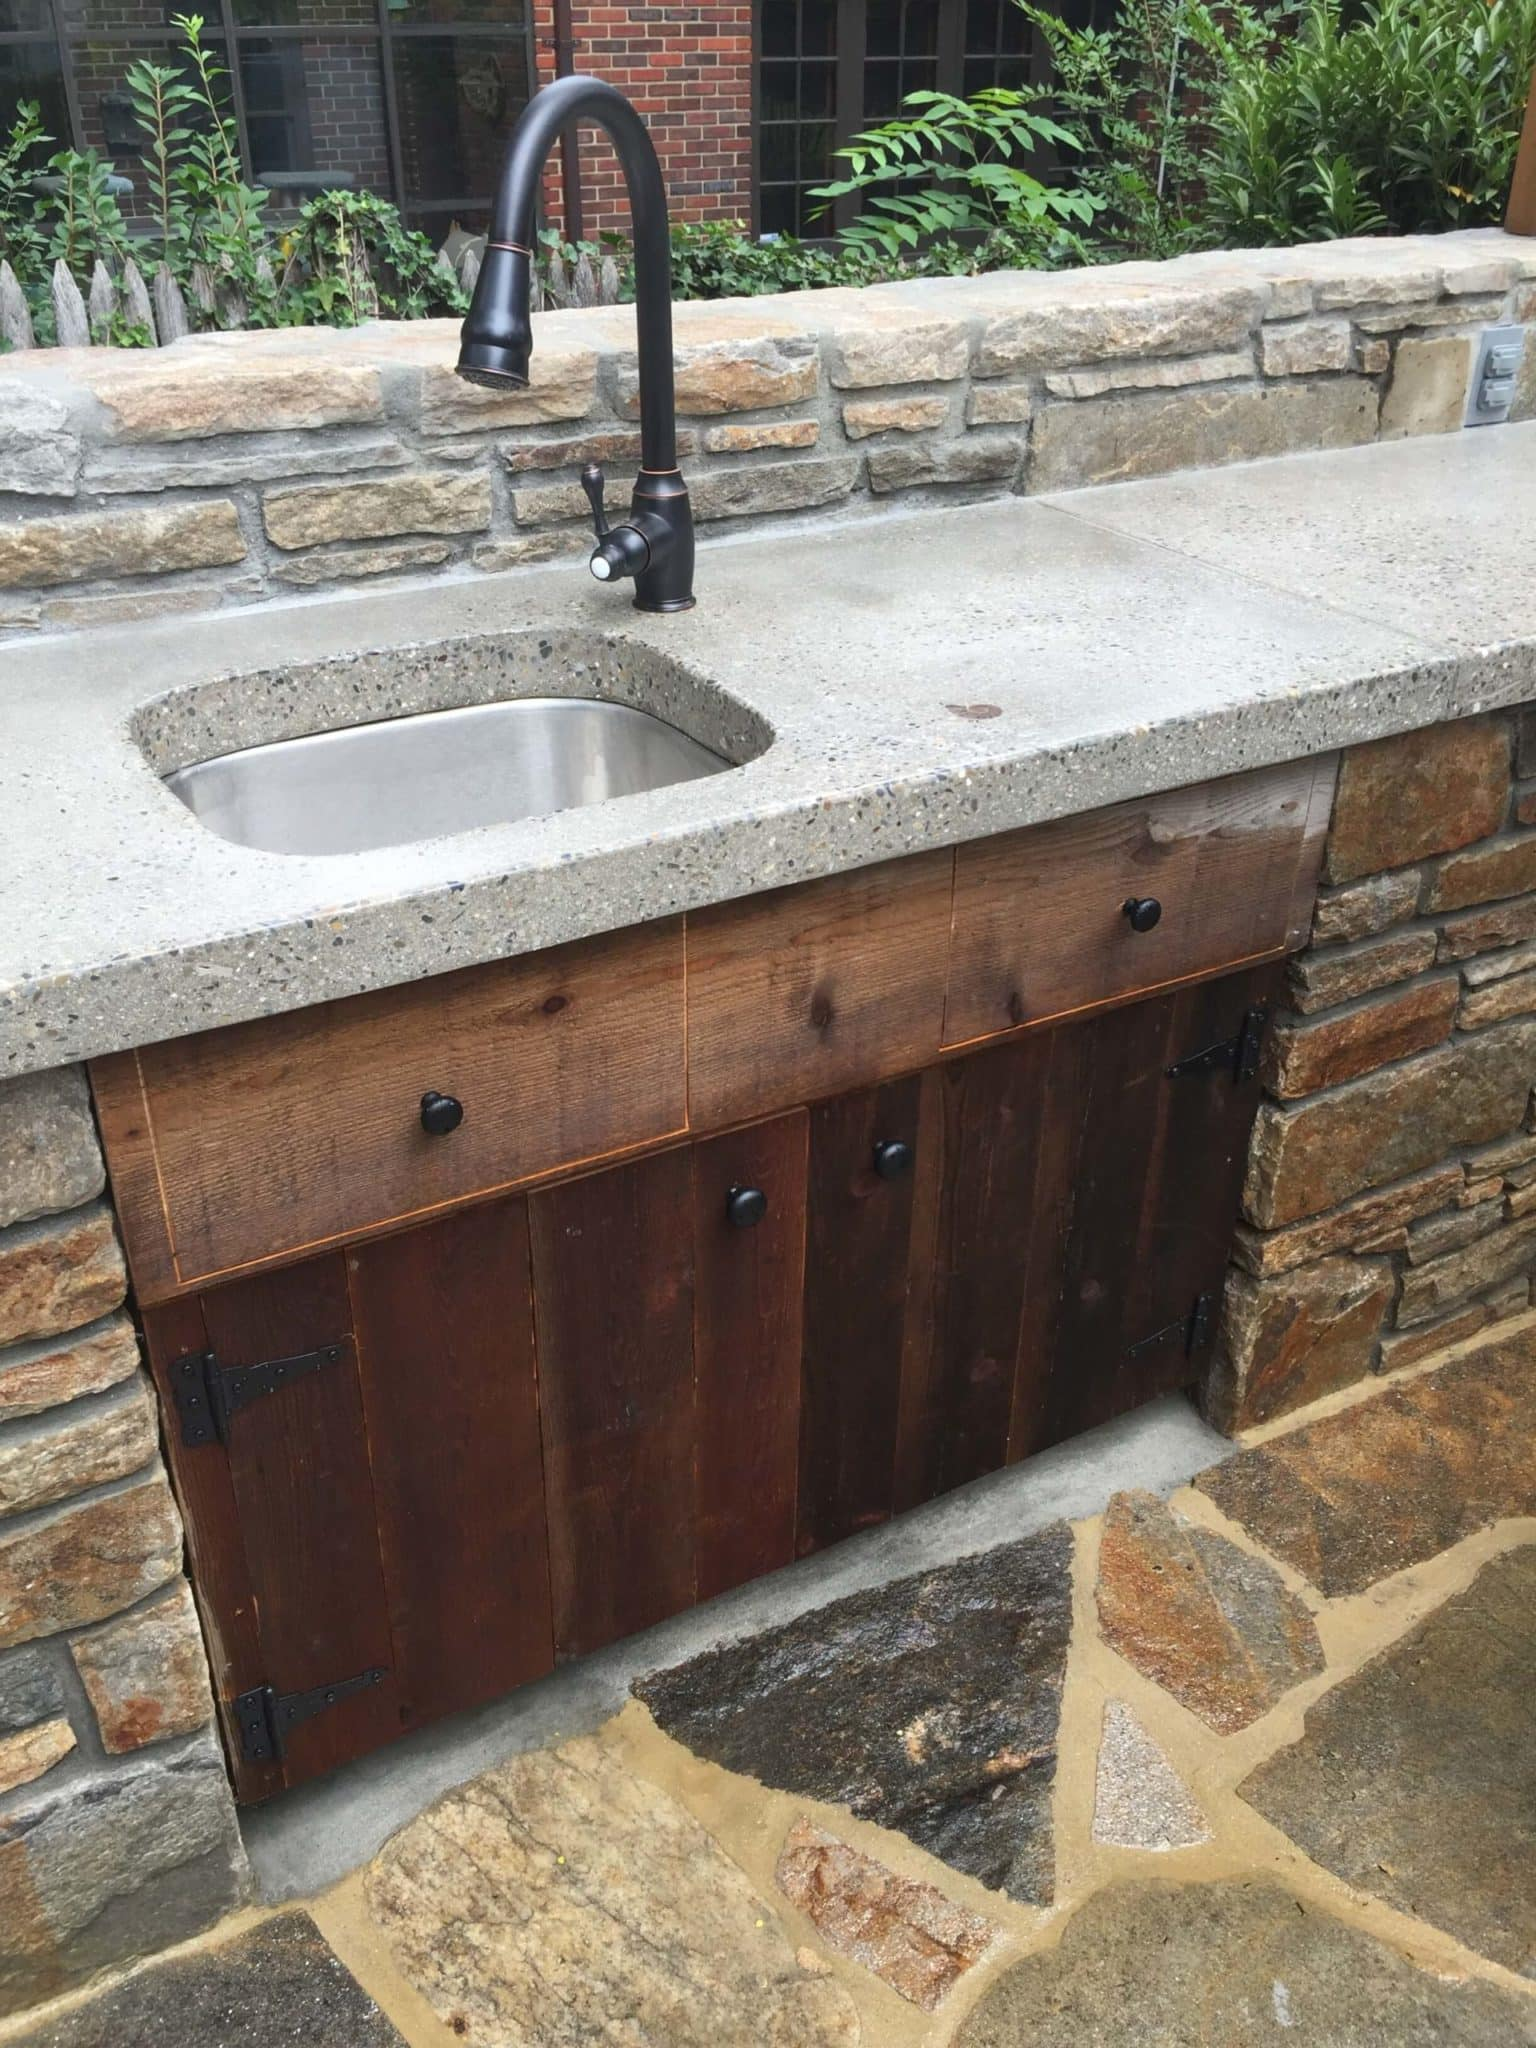 399 Outdoor Kitchen Sink with Concrete Counter Top and Built-In Wood Cabinet